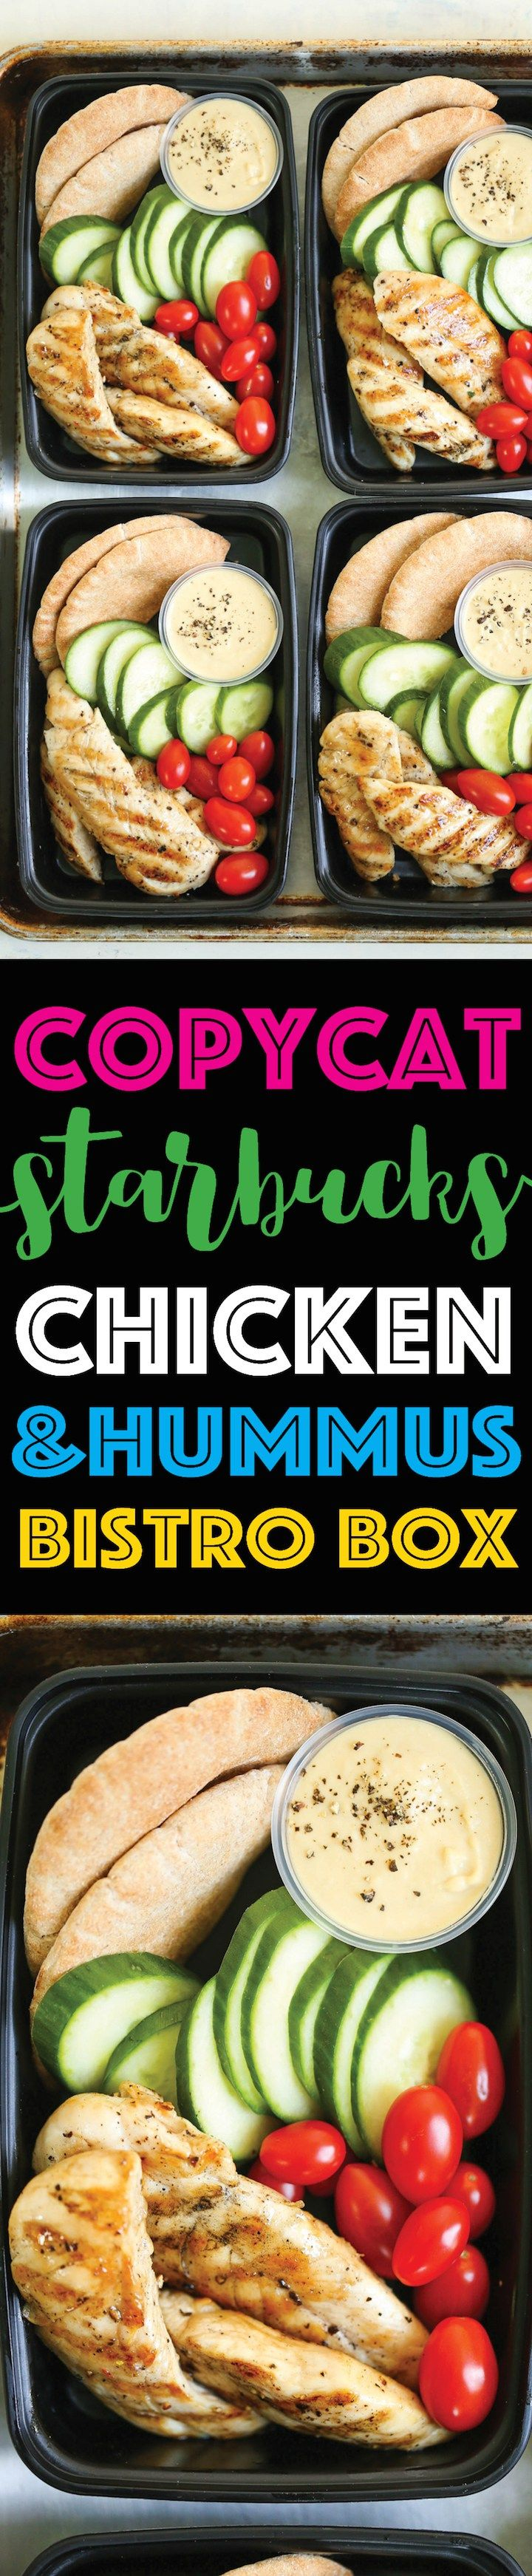 Copycat Starbucks Chicken and Hummus Bistro Box - Meal prep for the week ahead!!! Filled with hummus, chicken strips, cucumber, tomatoes and wheat pita.